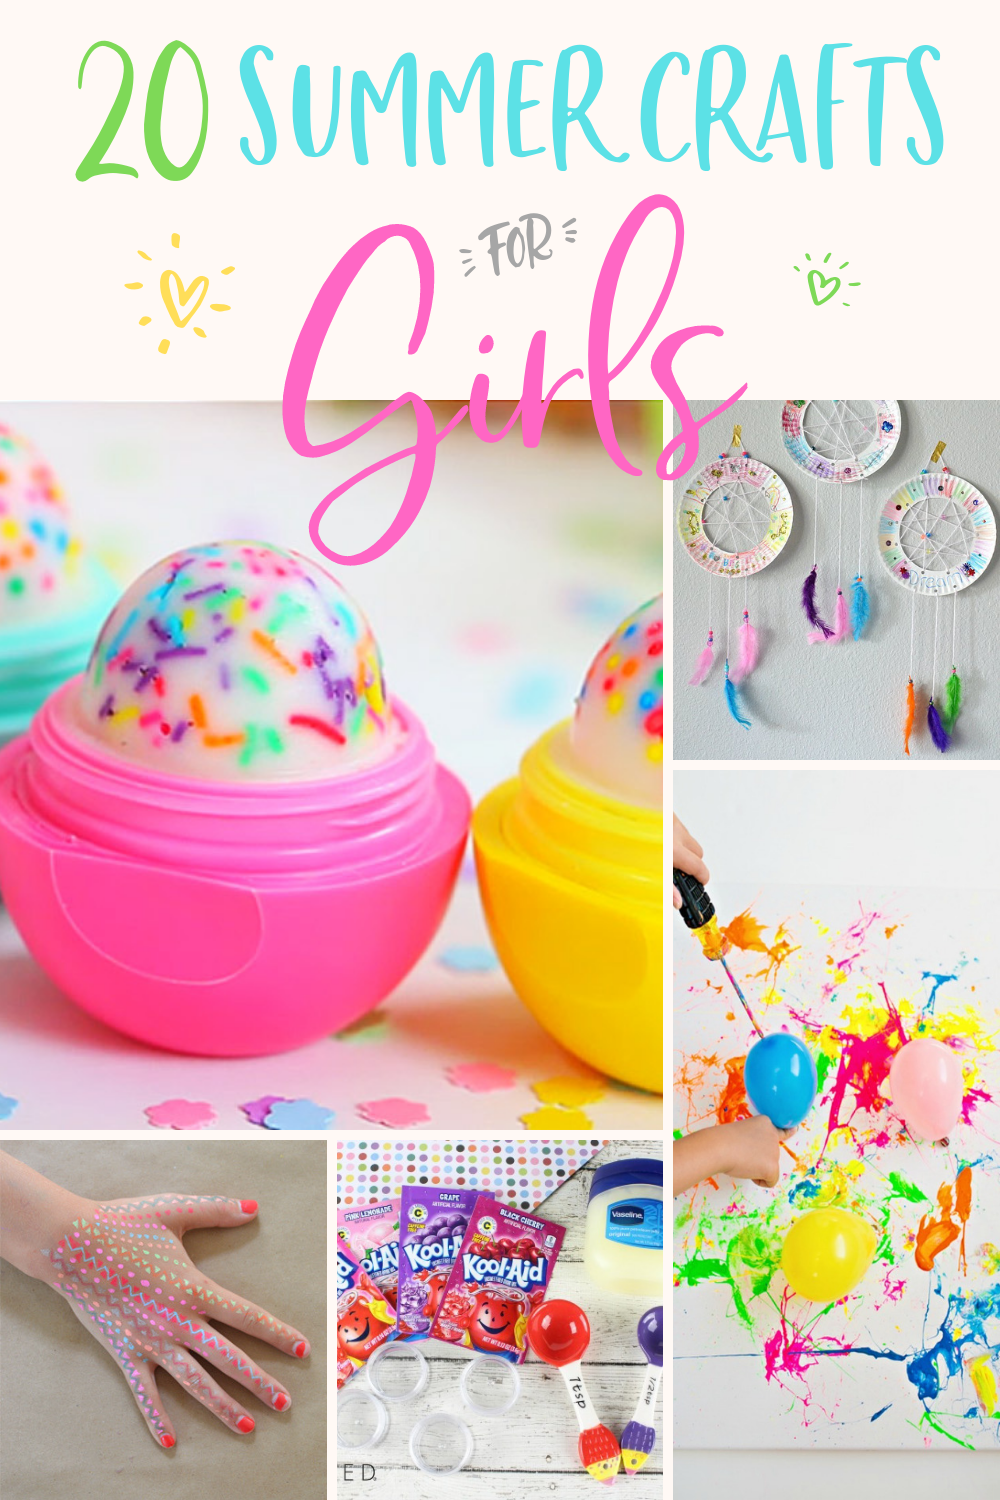 20 summer craft ideas for girls